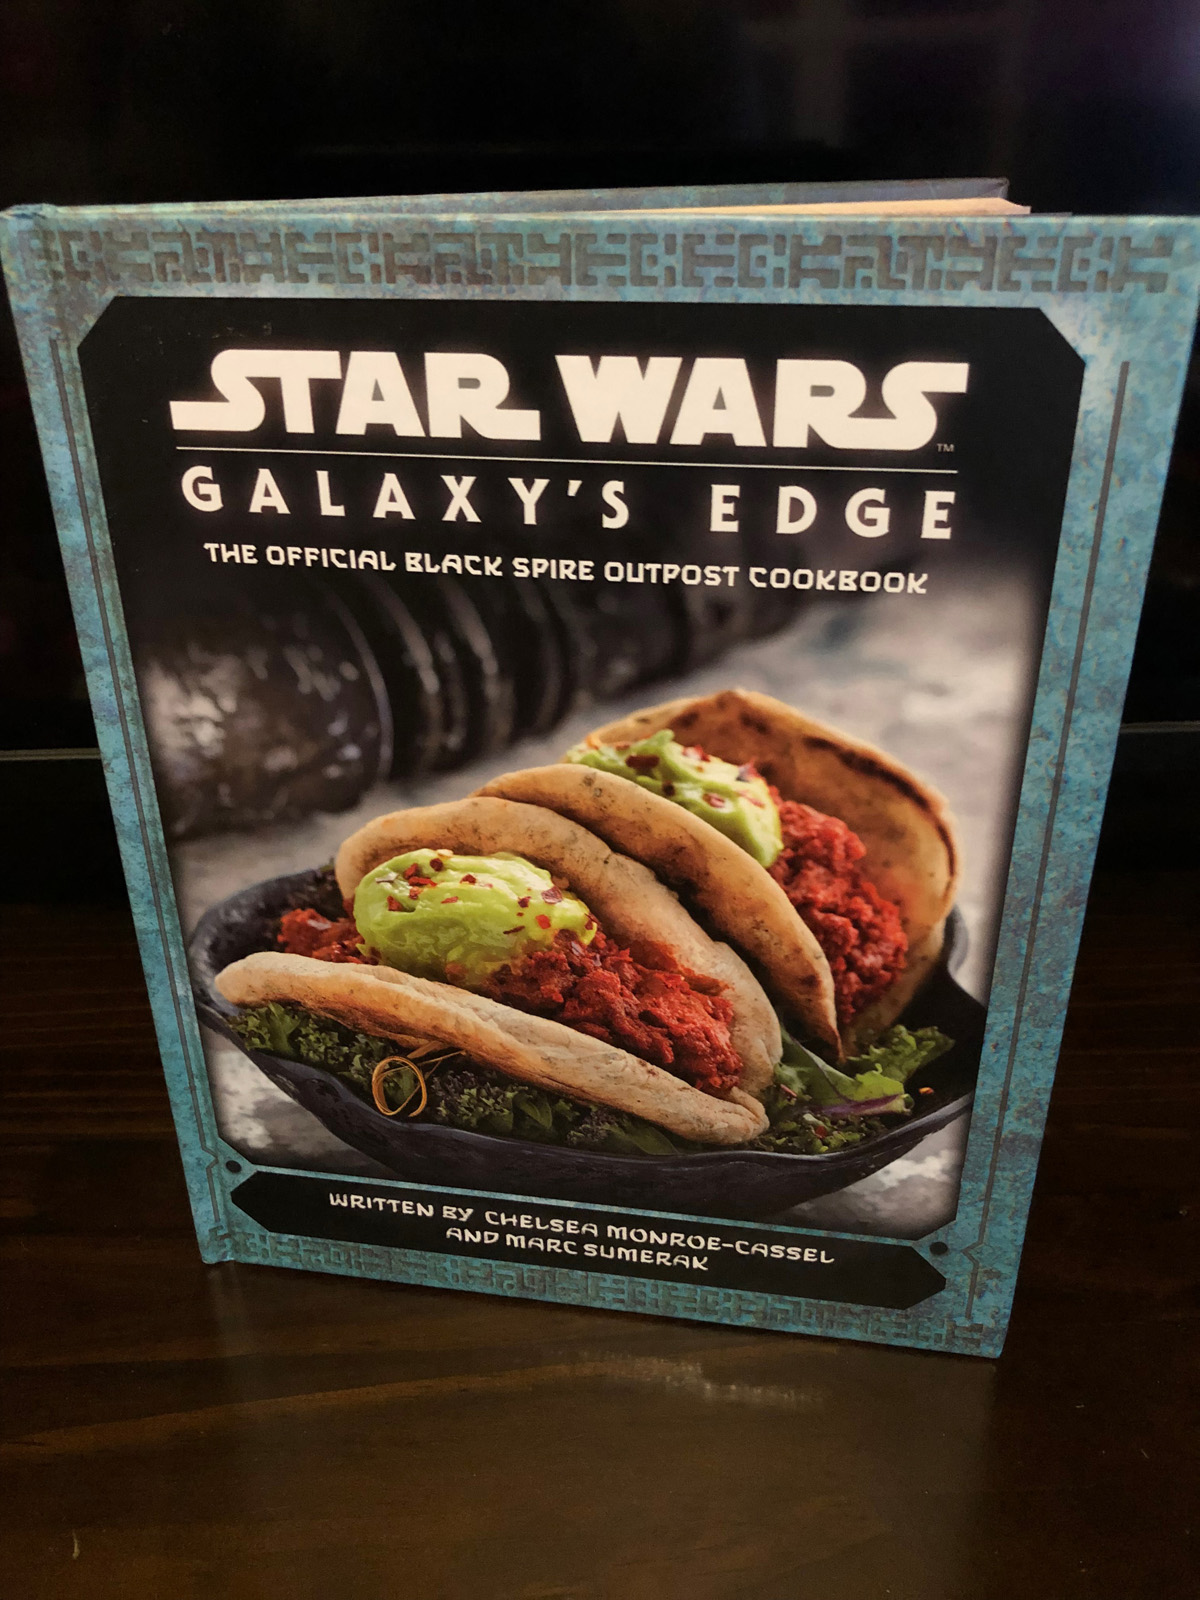 Galaxy's Edge: The Official Black Spire Outpost Cookbook